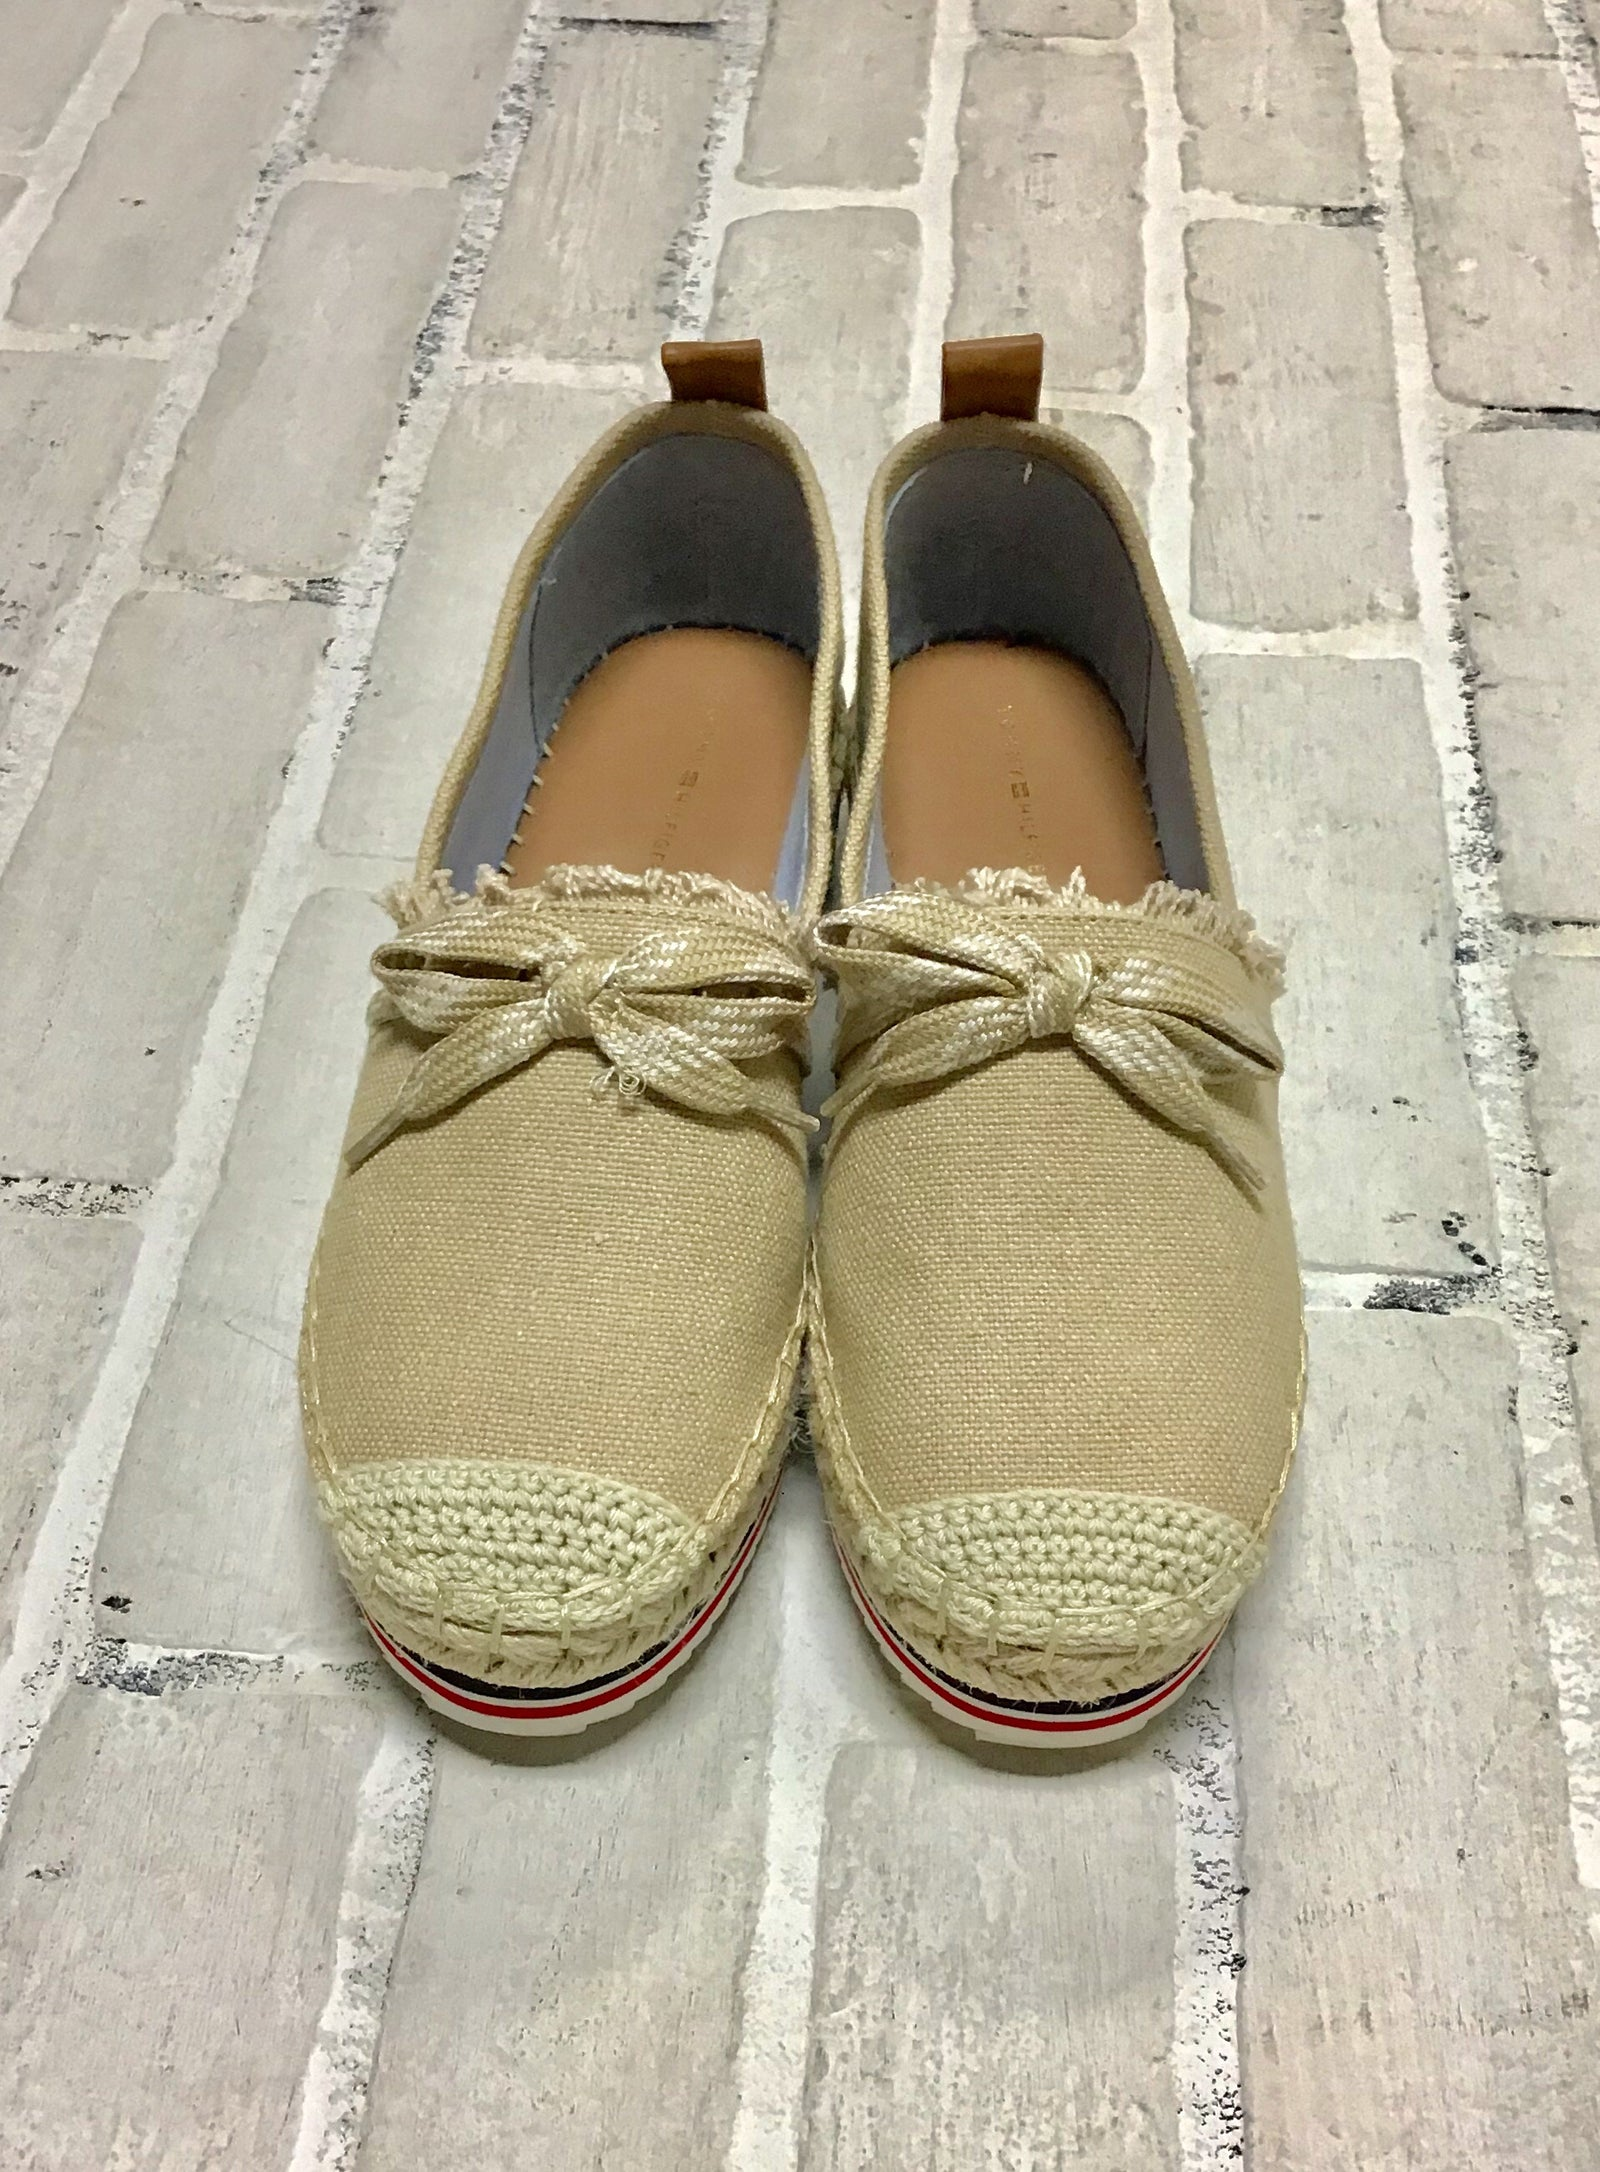 Tommy Hilfiger Shoes (8.5)